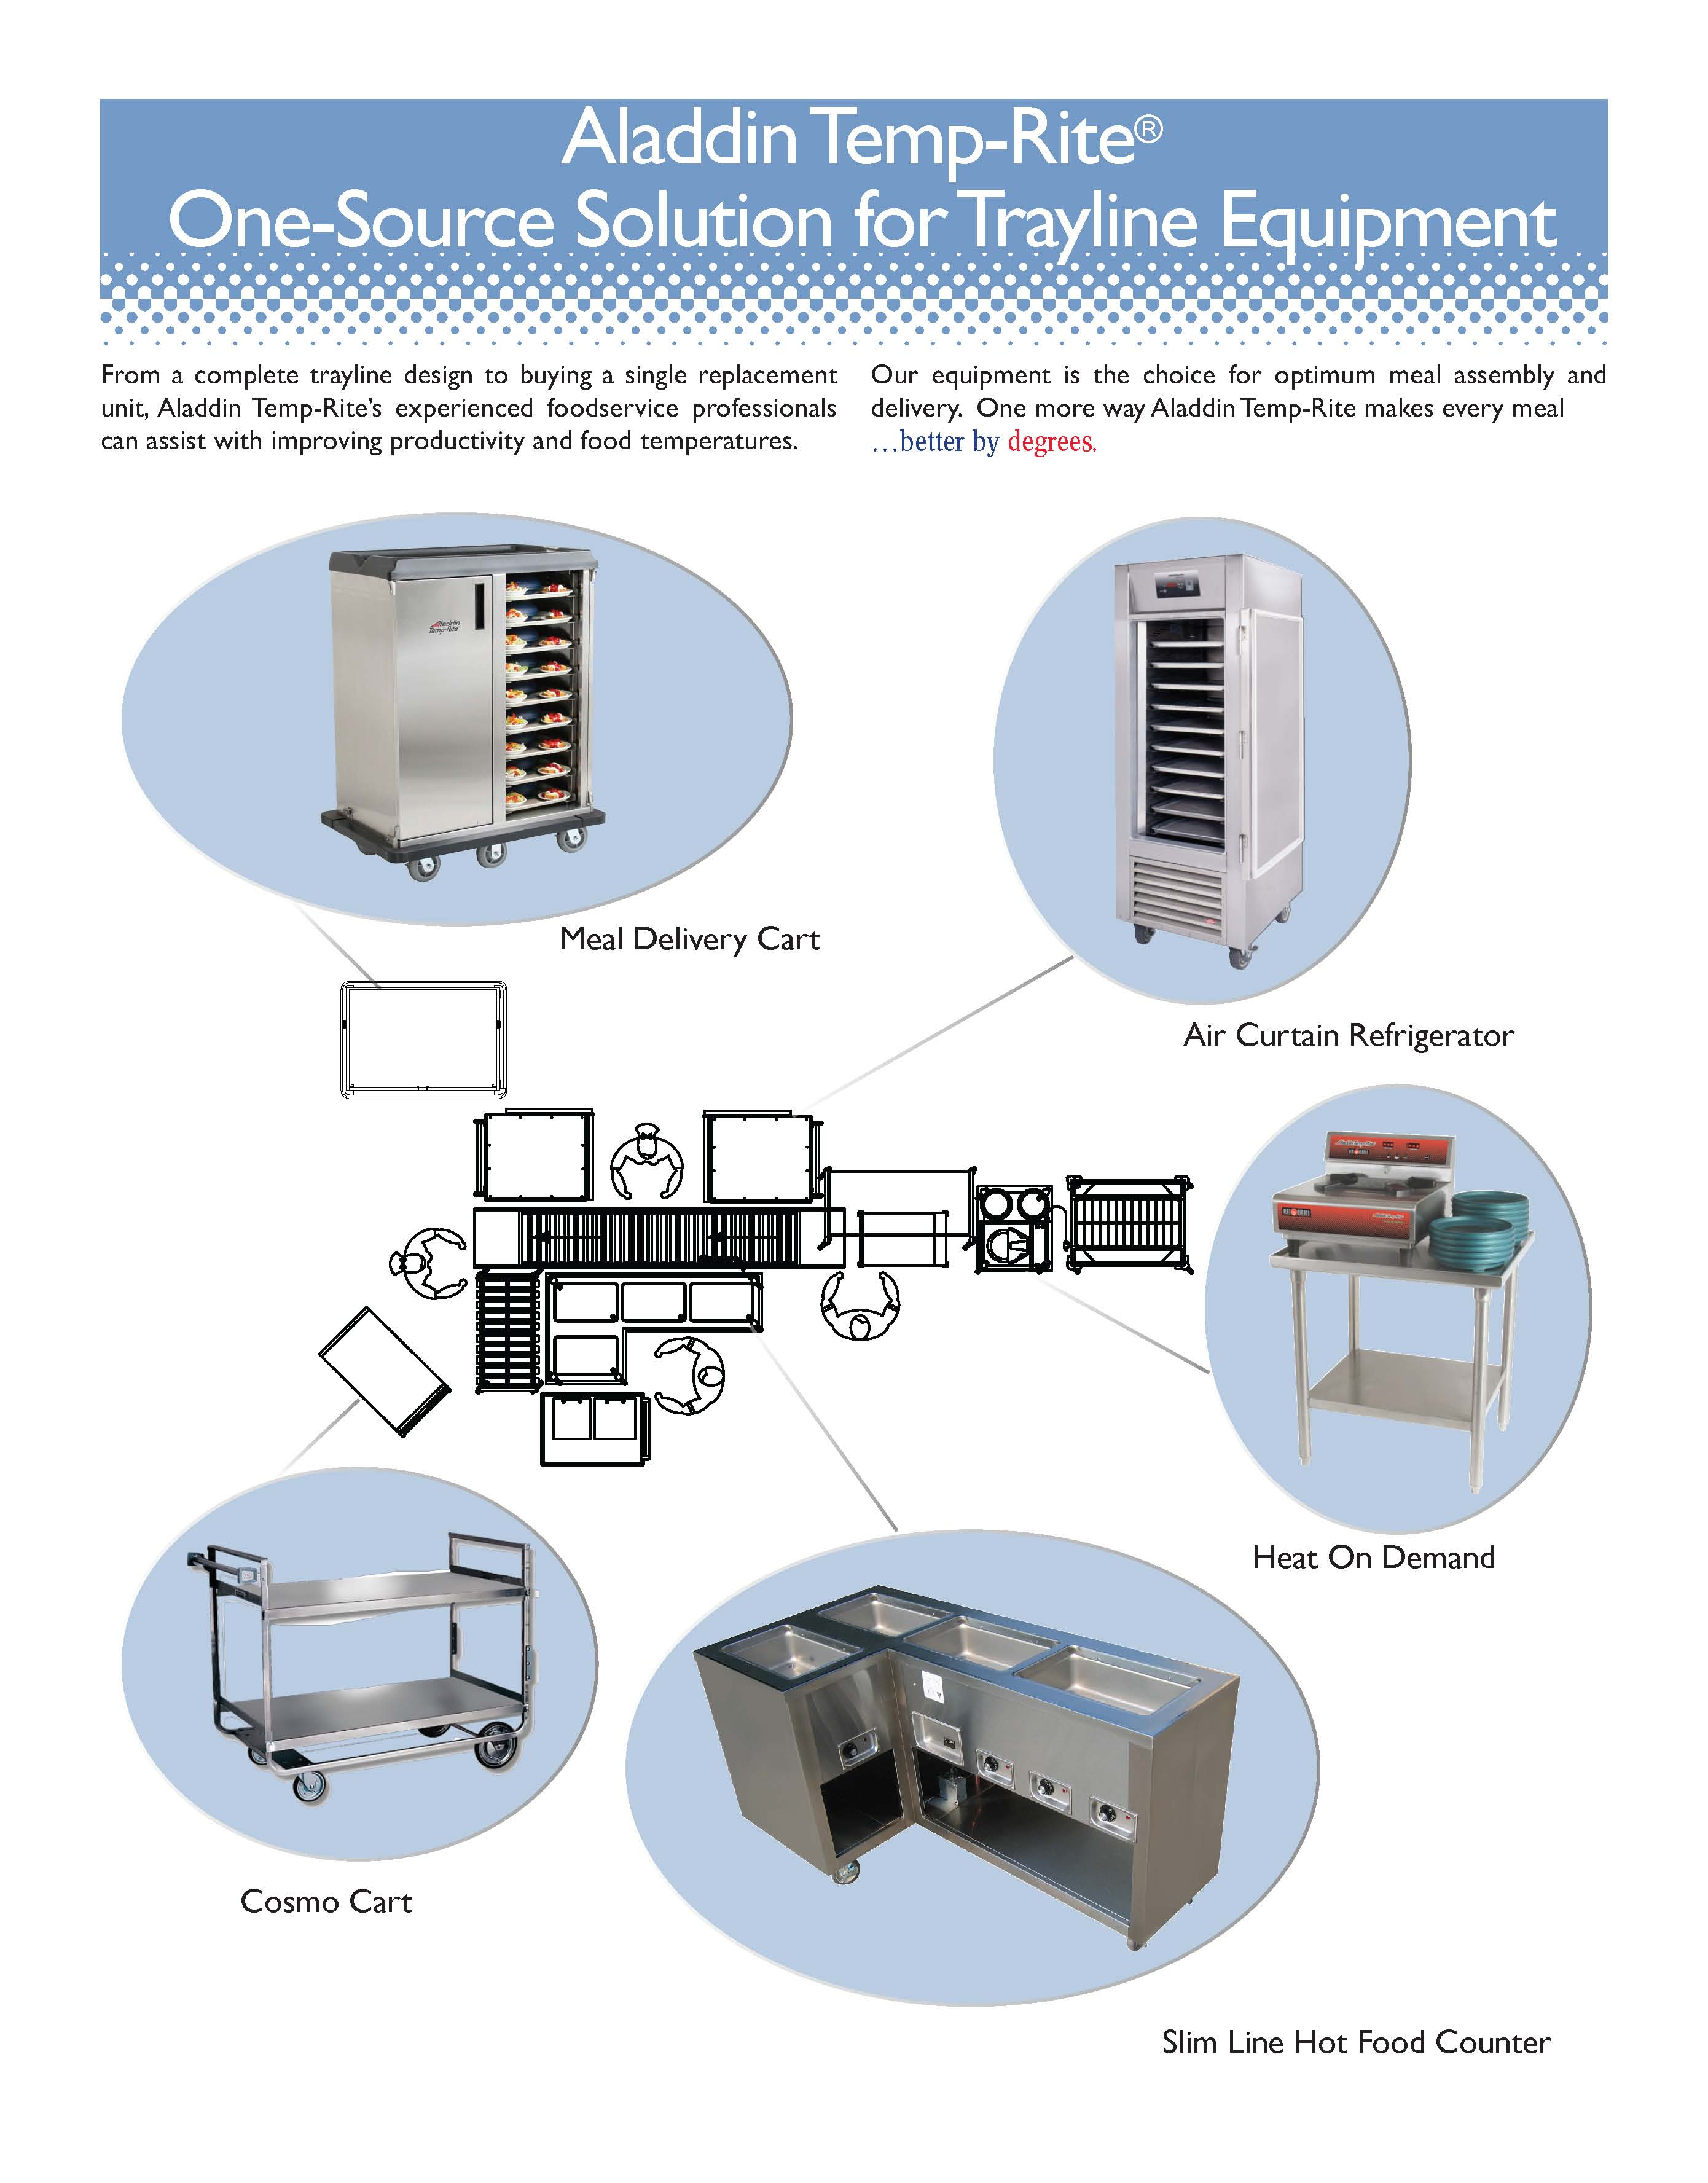 hospital wiring diagram ppt bell telephone worksheet for food service tray line - illustration of